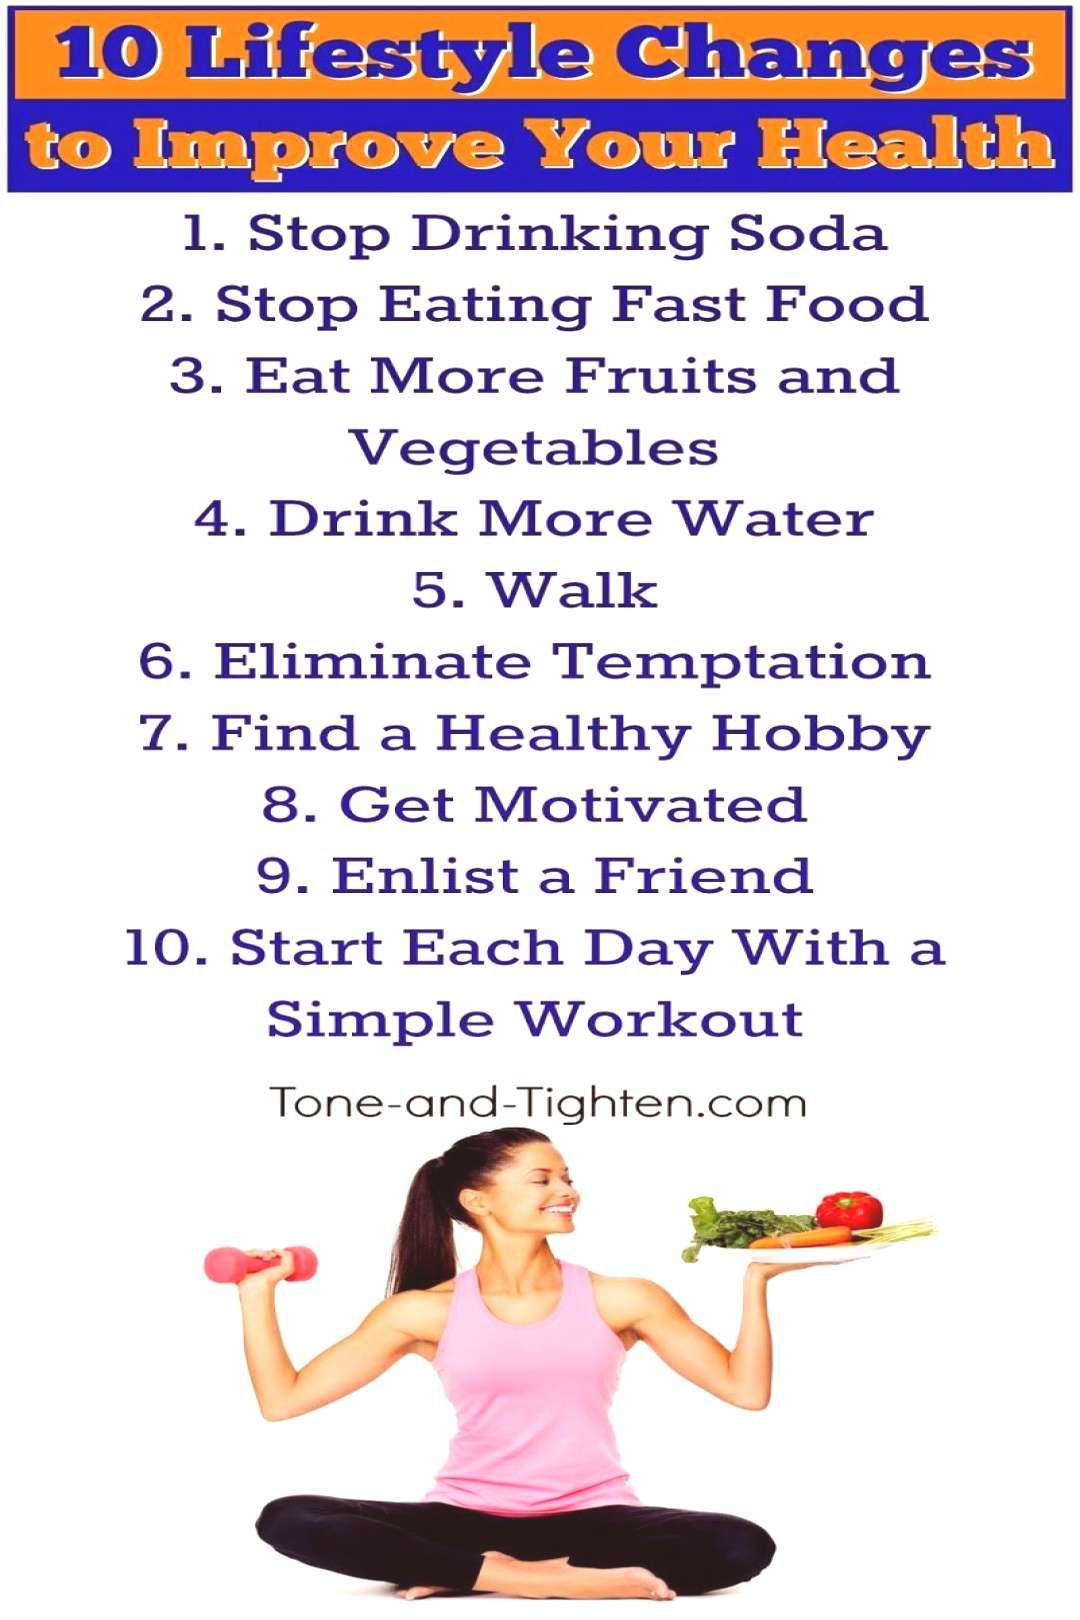 #toneandtightencom #lifestyle #changes #healthy #fitness #weight #advice #easy #help #lose #from #yo...